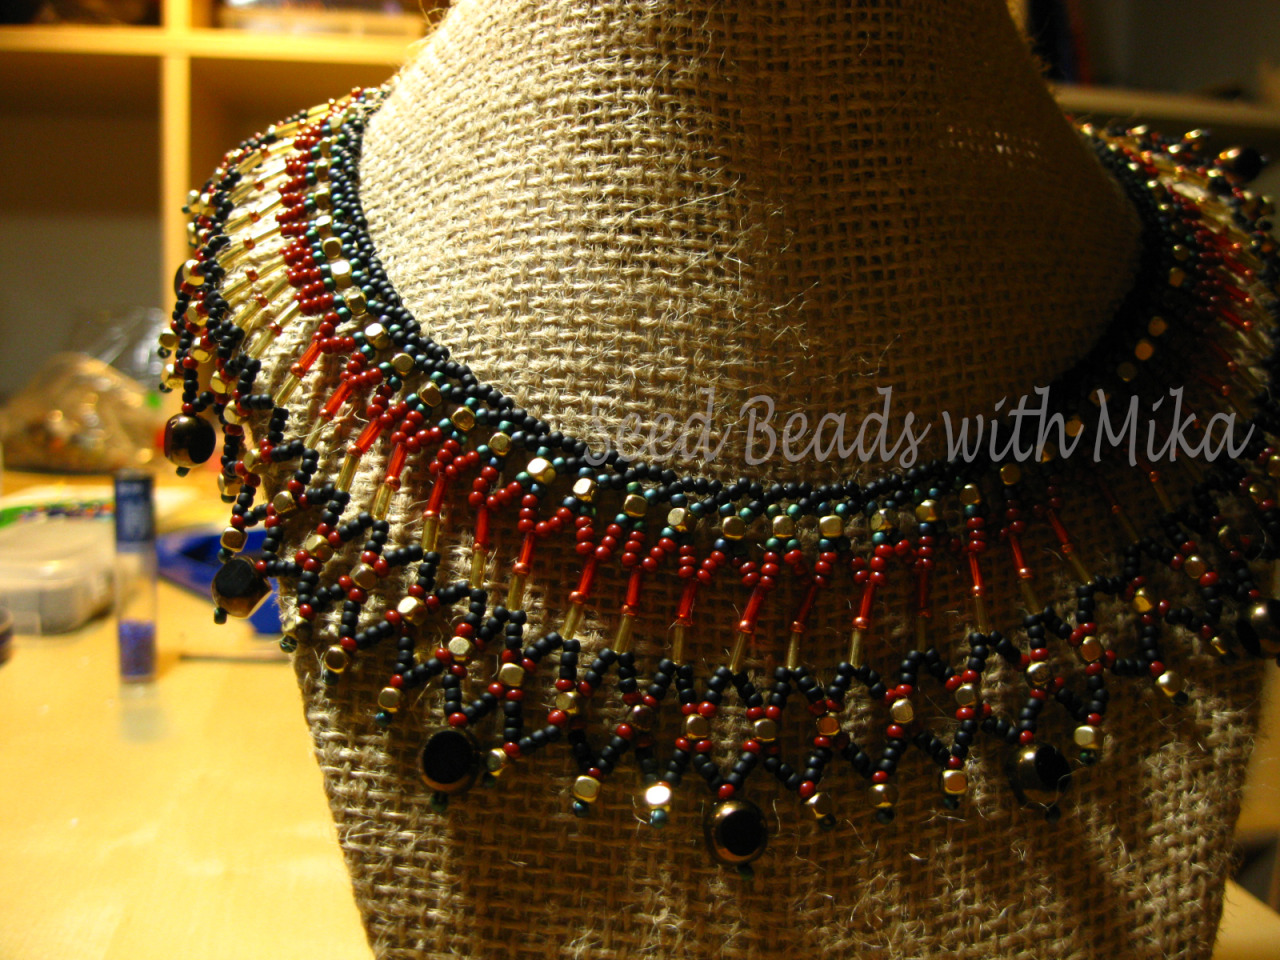 egyptian-inspired-necklace-by-ta-meu-bem_17046988461_o.jpg